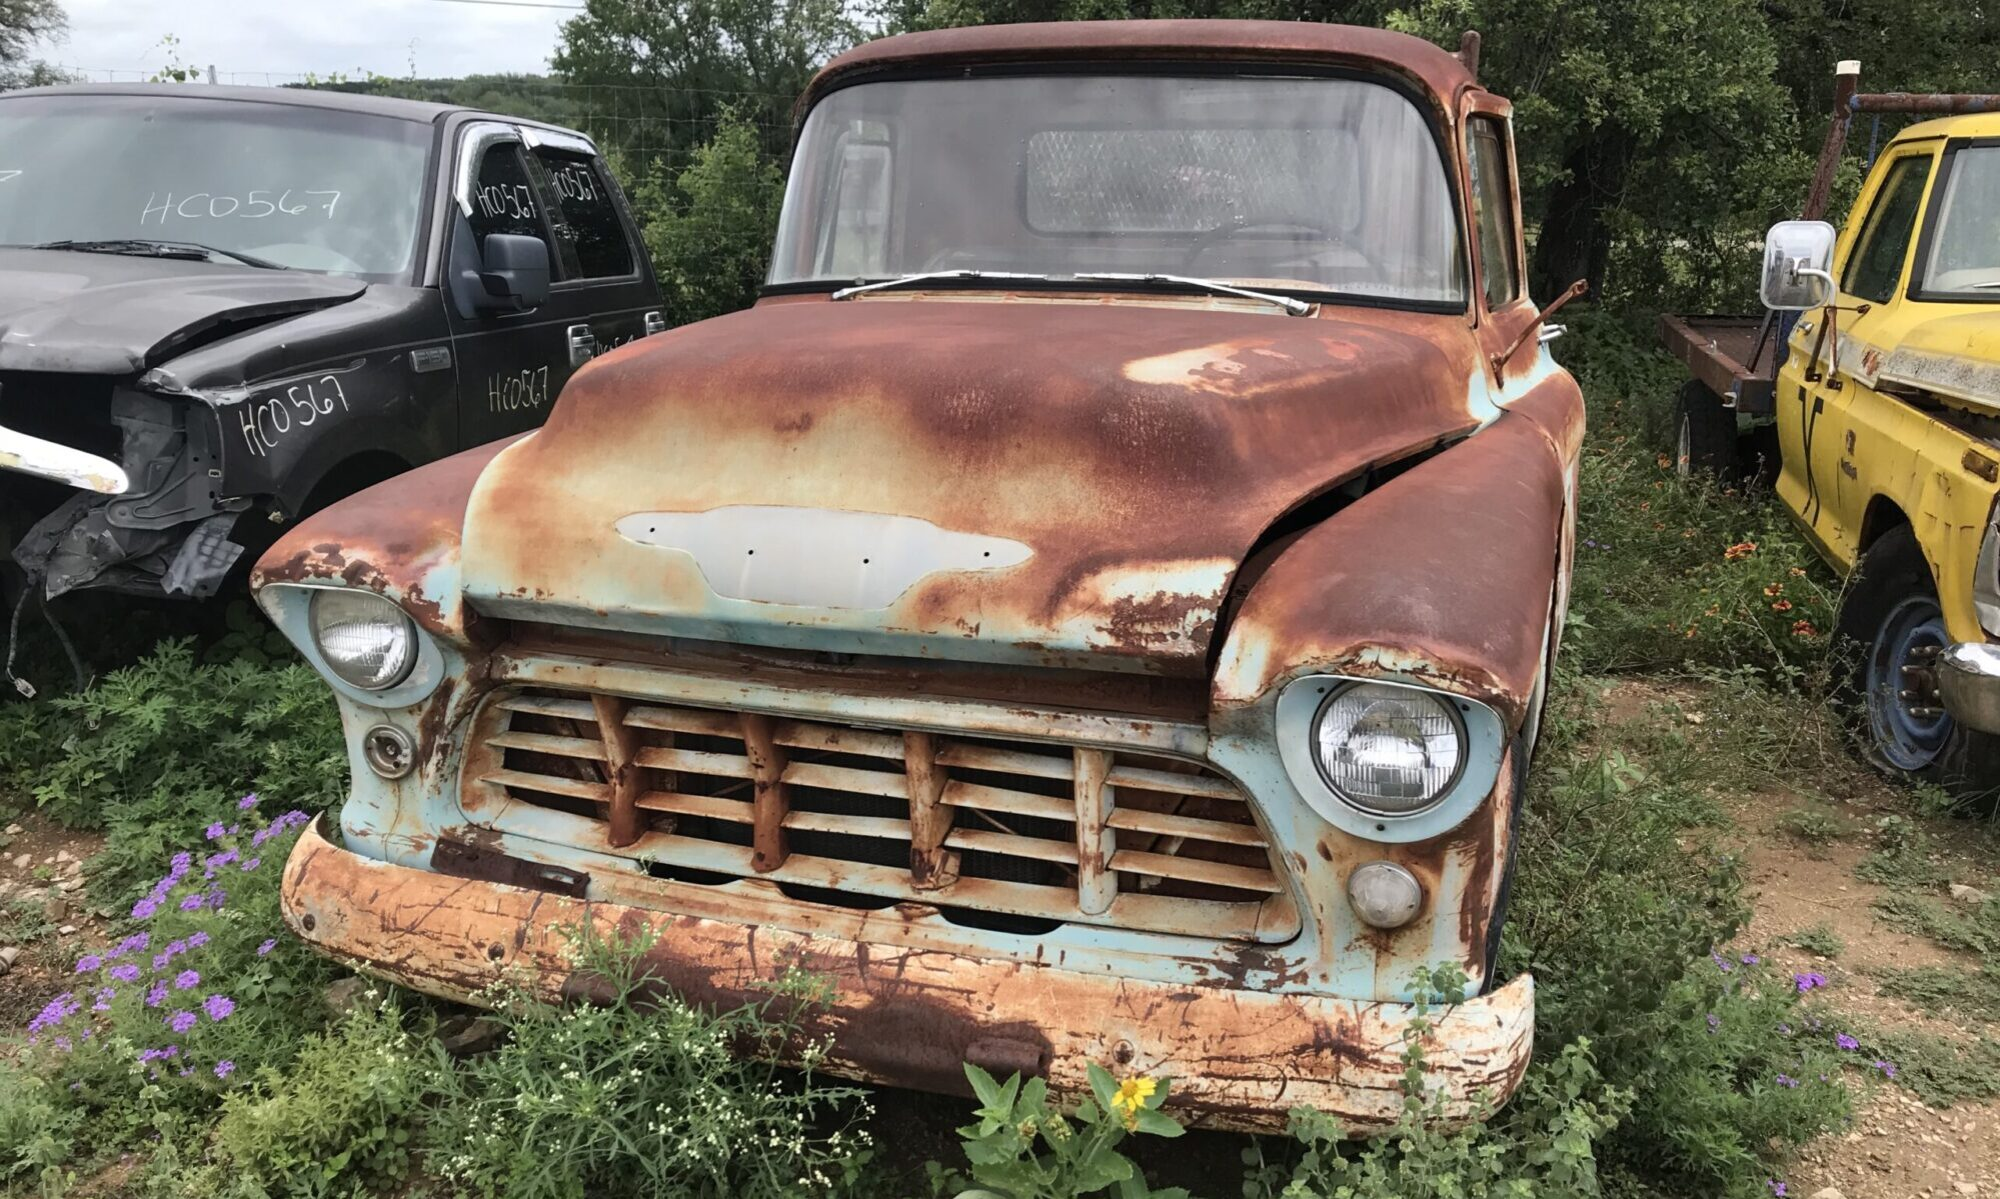 Hill Country Auto Salvage & Towing